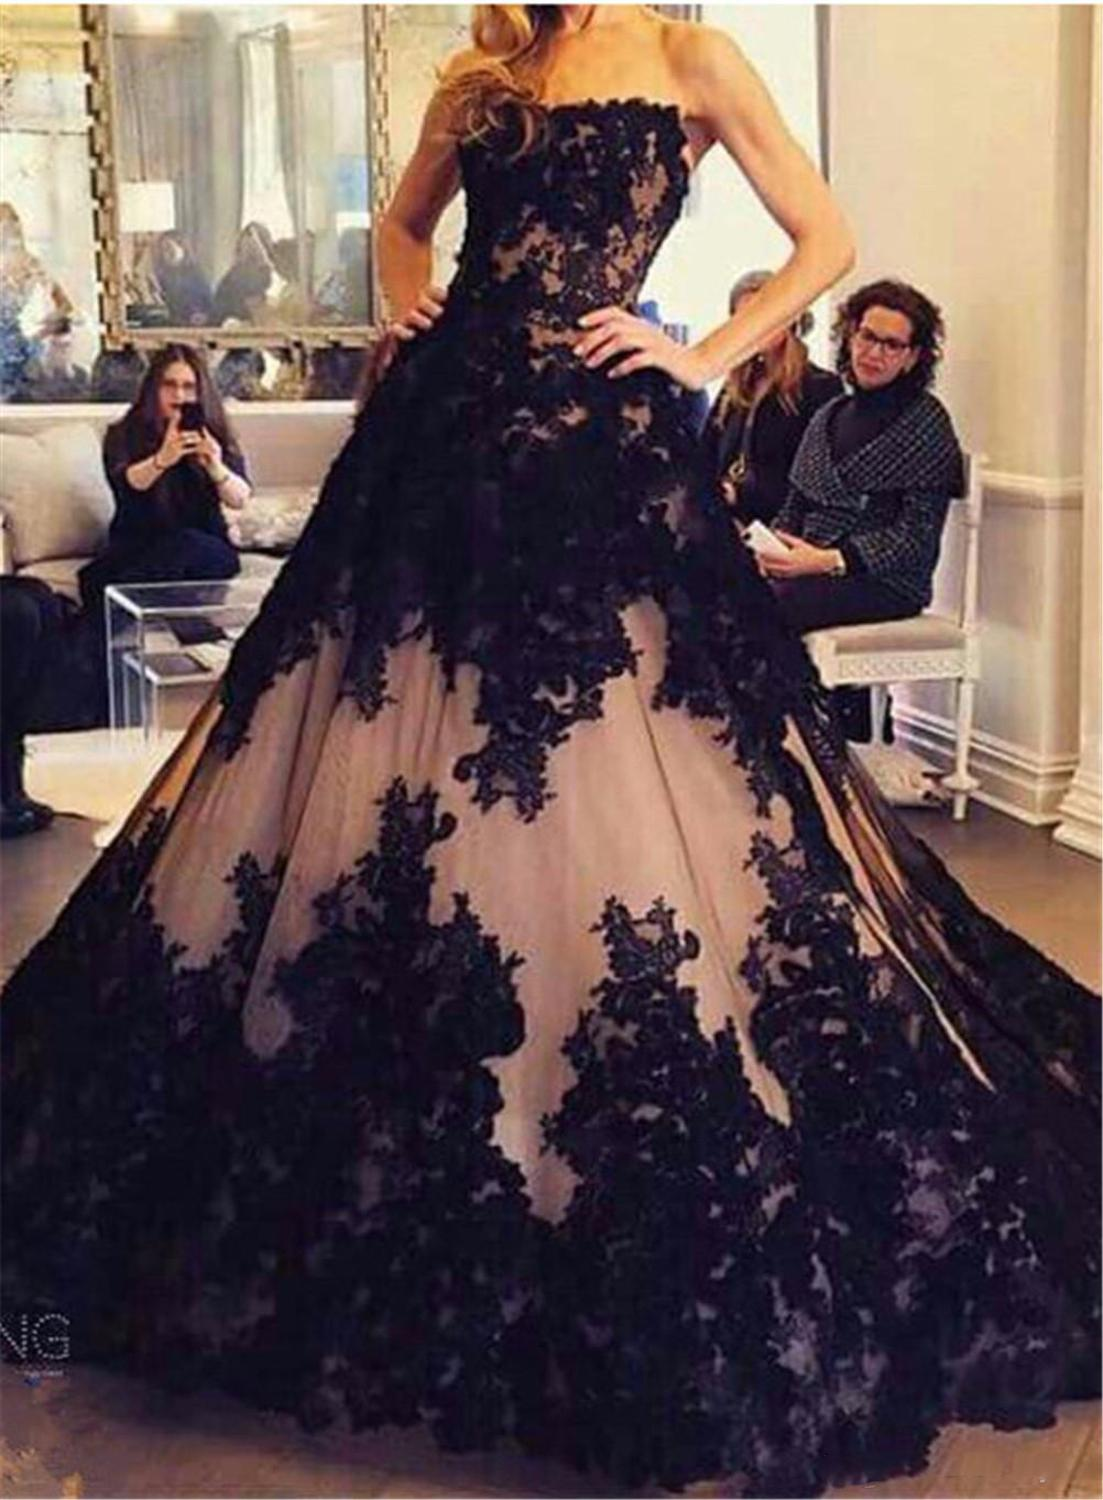 2020 Vintage Gothic Bridal Wedding Gown Plus Size Sweetheart Sweep Train Black Lace-Up Ball Gown Wedding Dress Custom Made